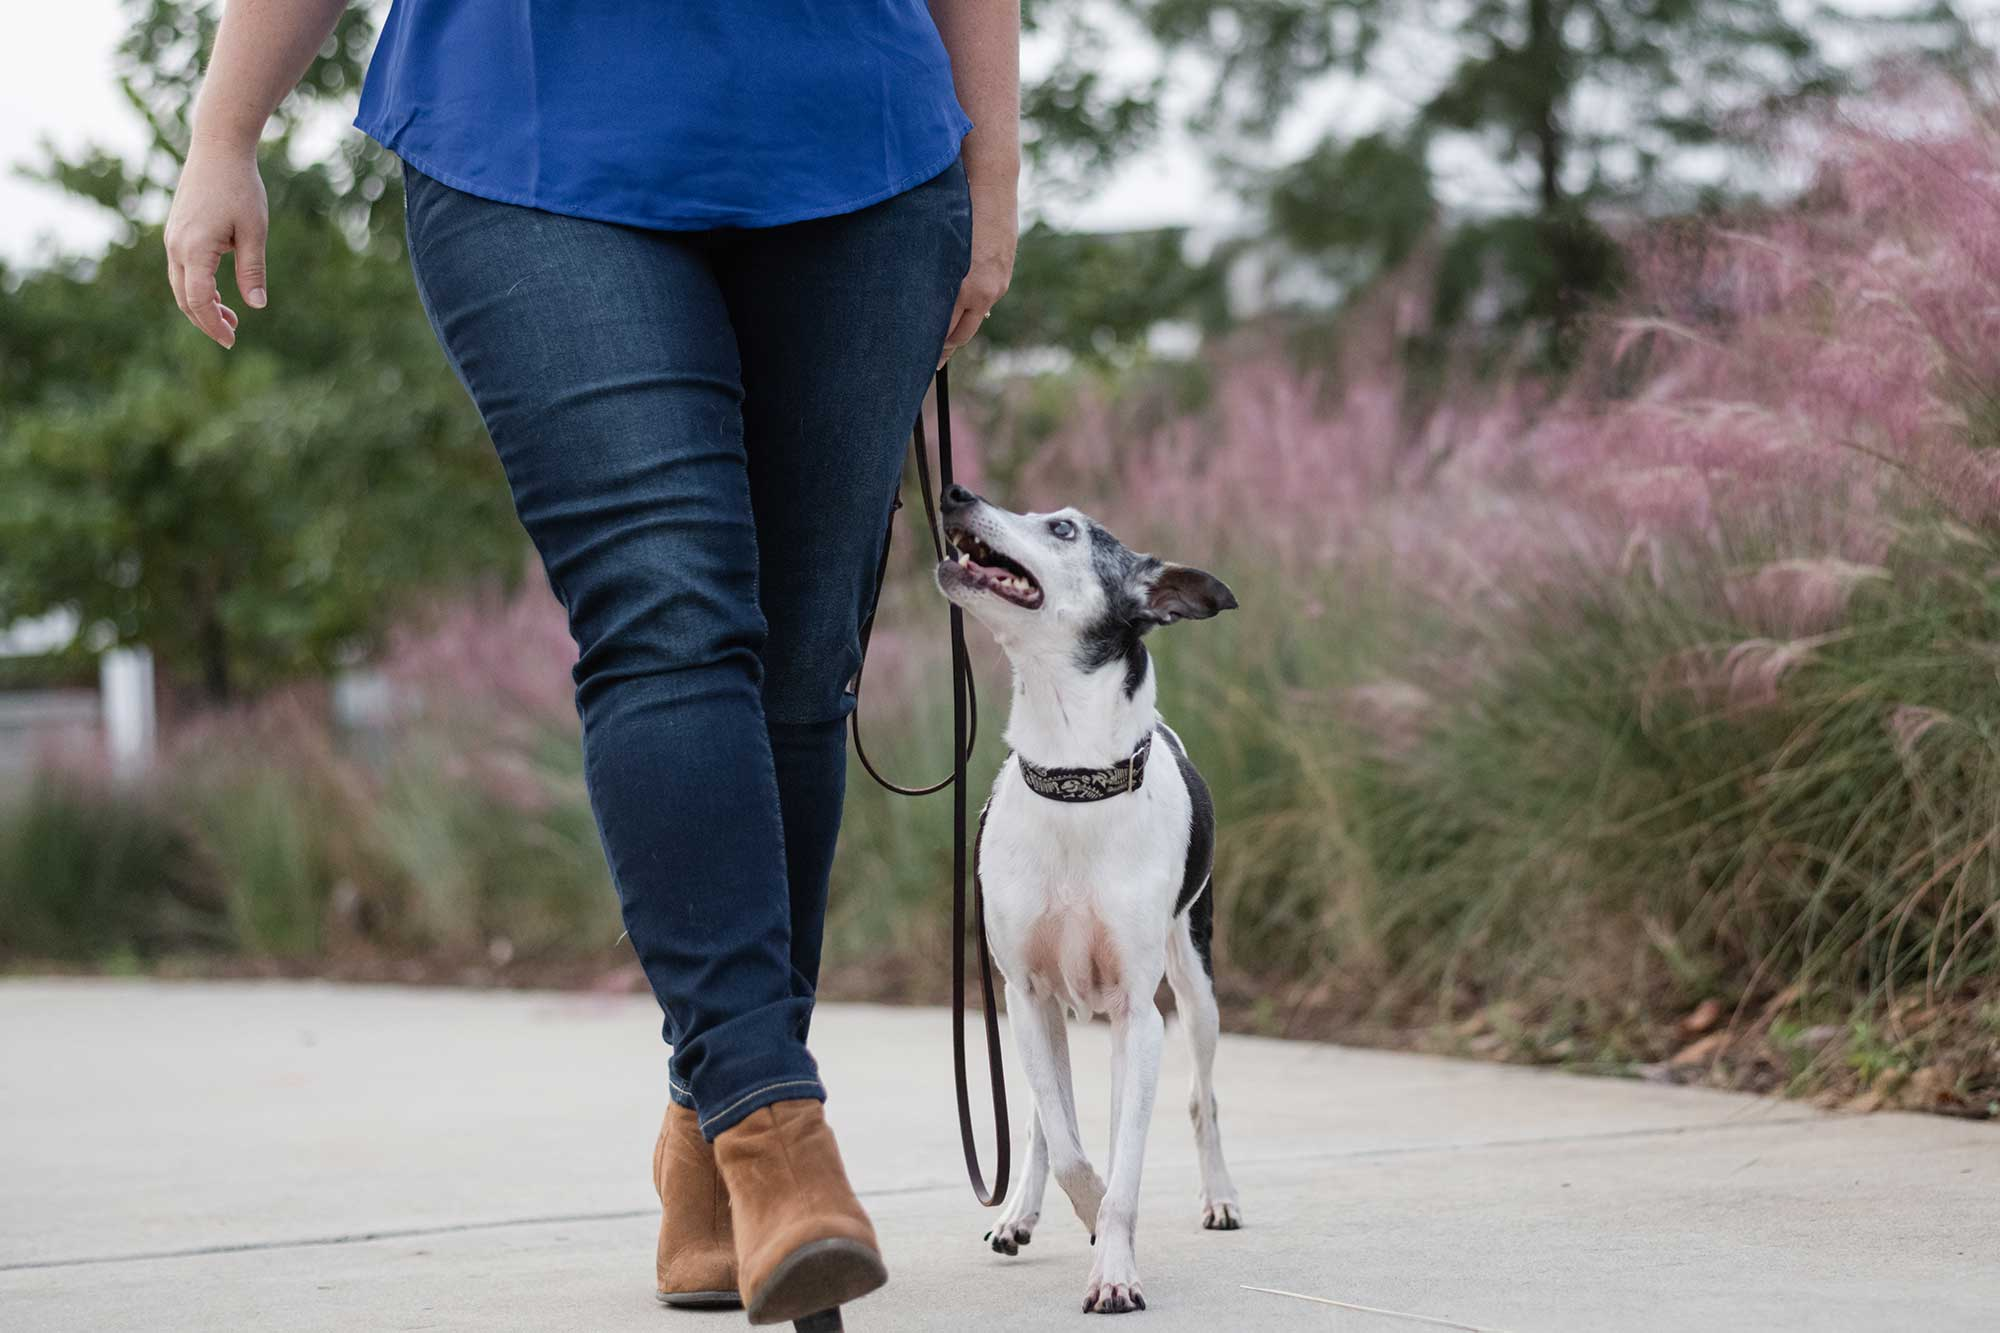 Senior dogs can have physical limitations that require routine modifications to tricks and behaviors as they age. Lawrenceville dog photographer Courtney Bryson gets advice from a dog trainer.